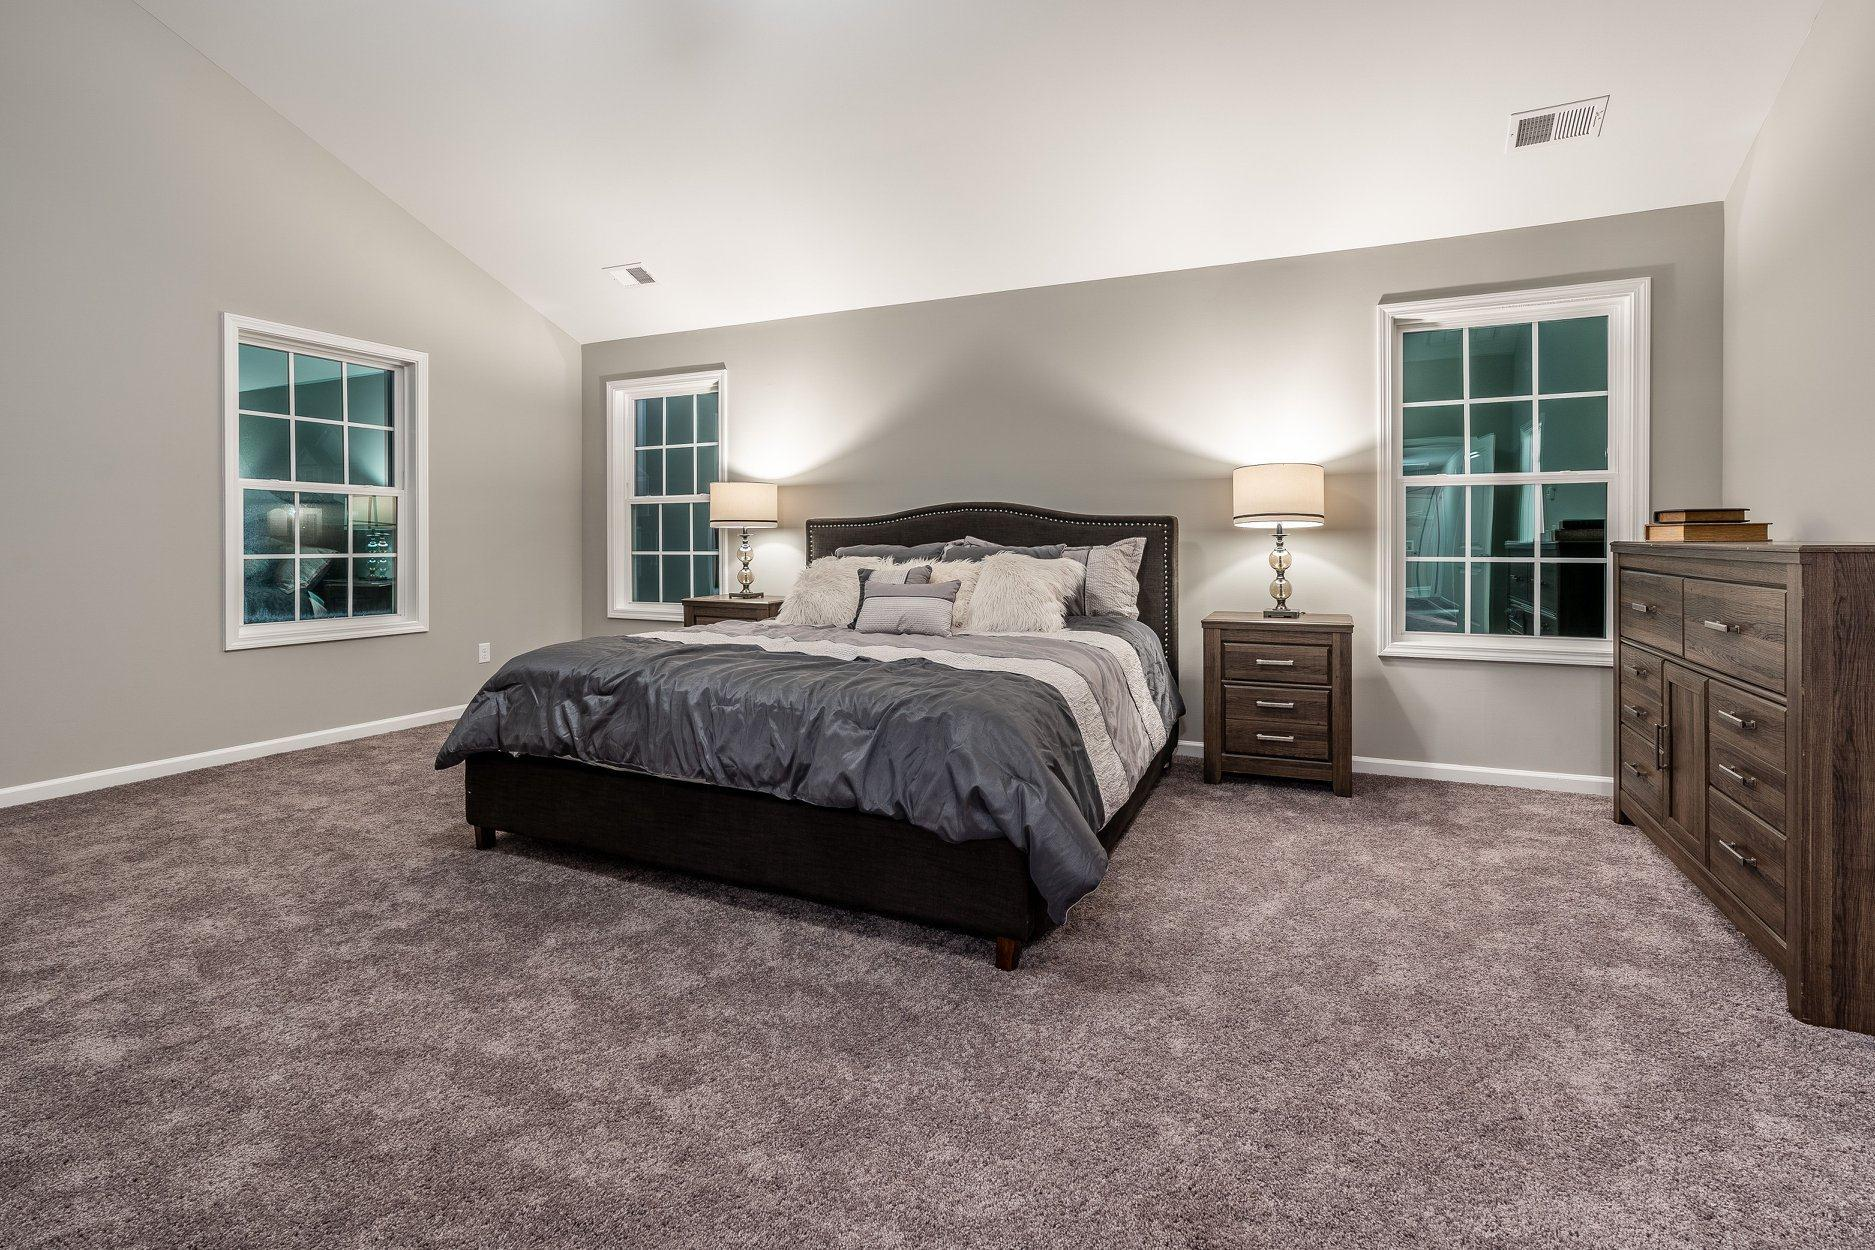 Bedroom featured in the Harrison By Hughston Homes in Atlanta, GA